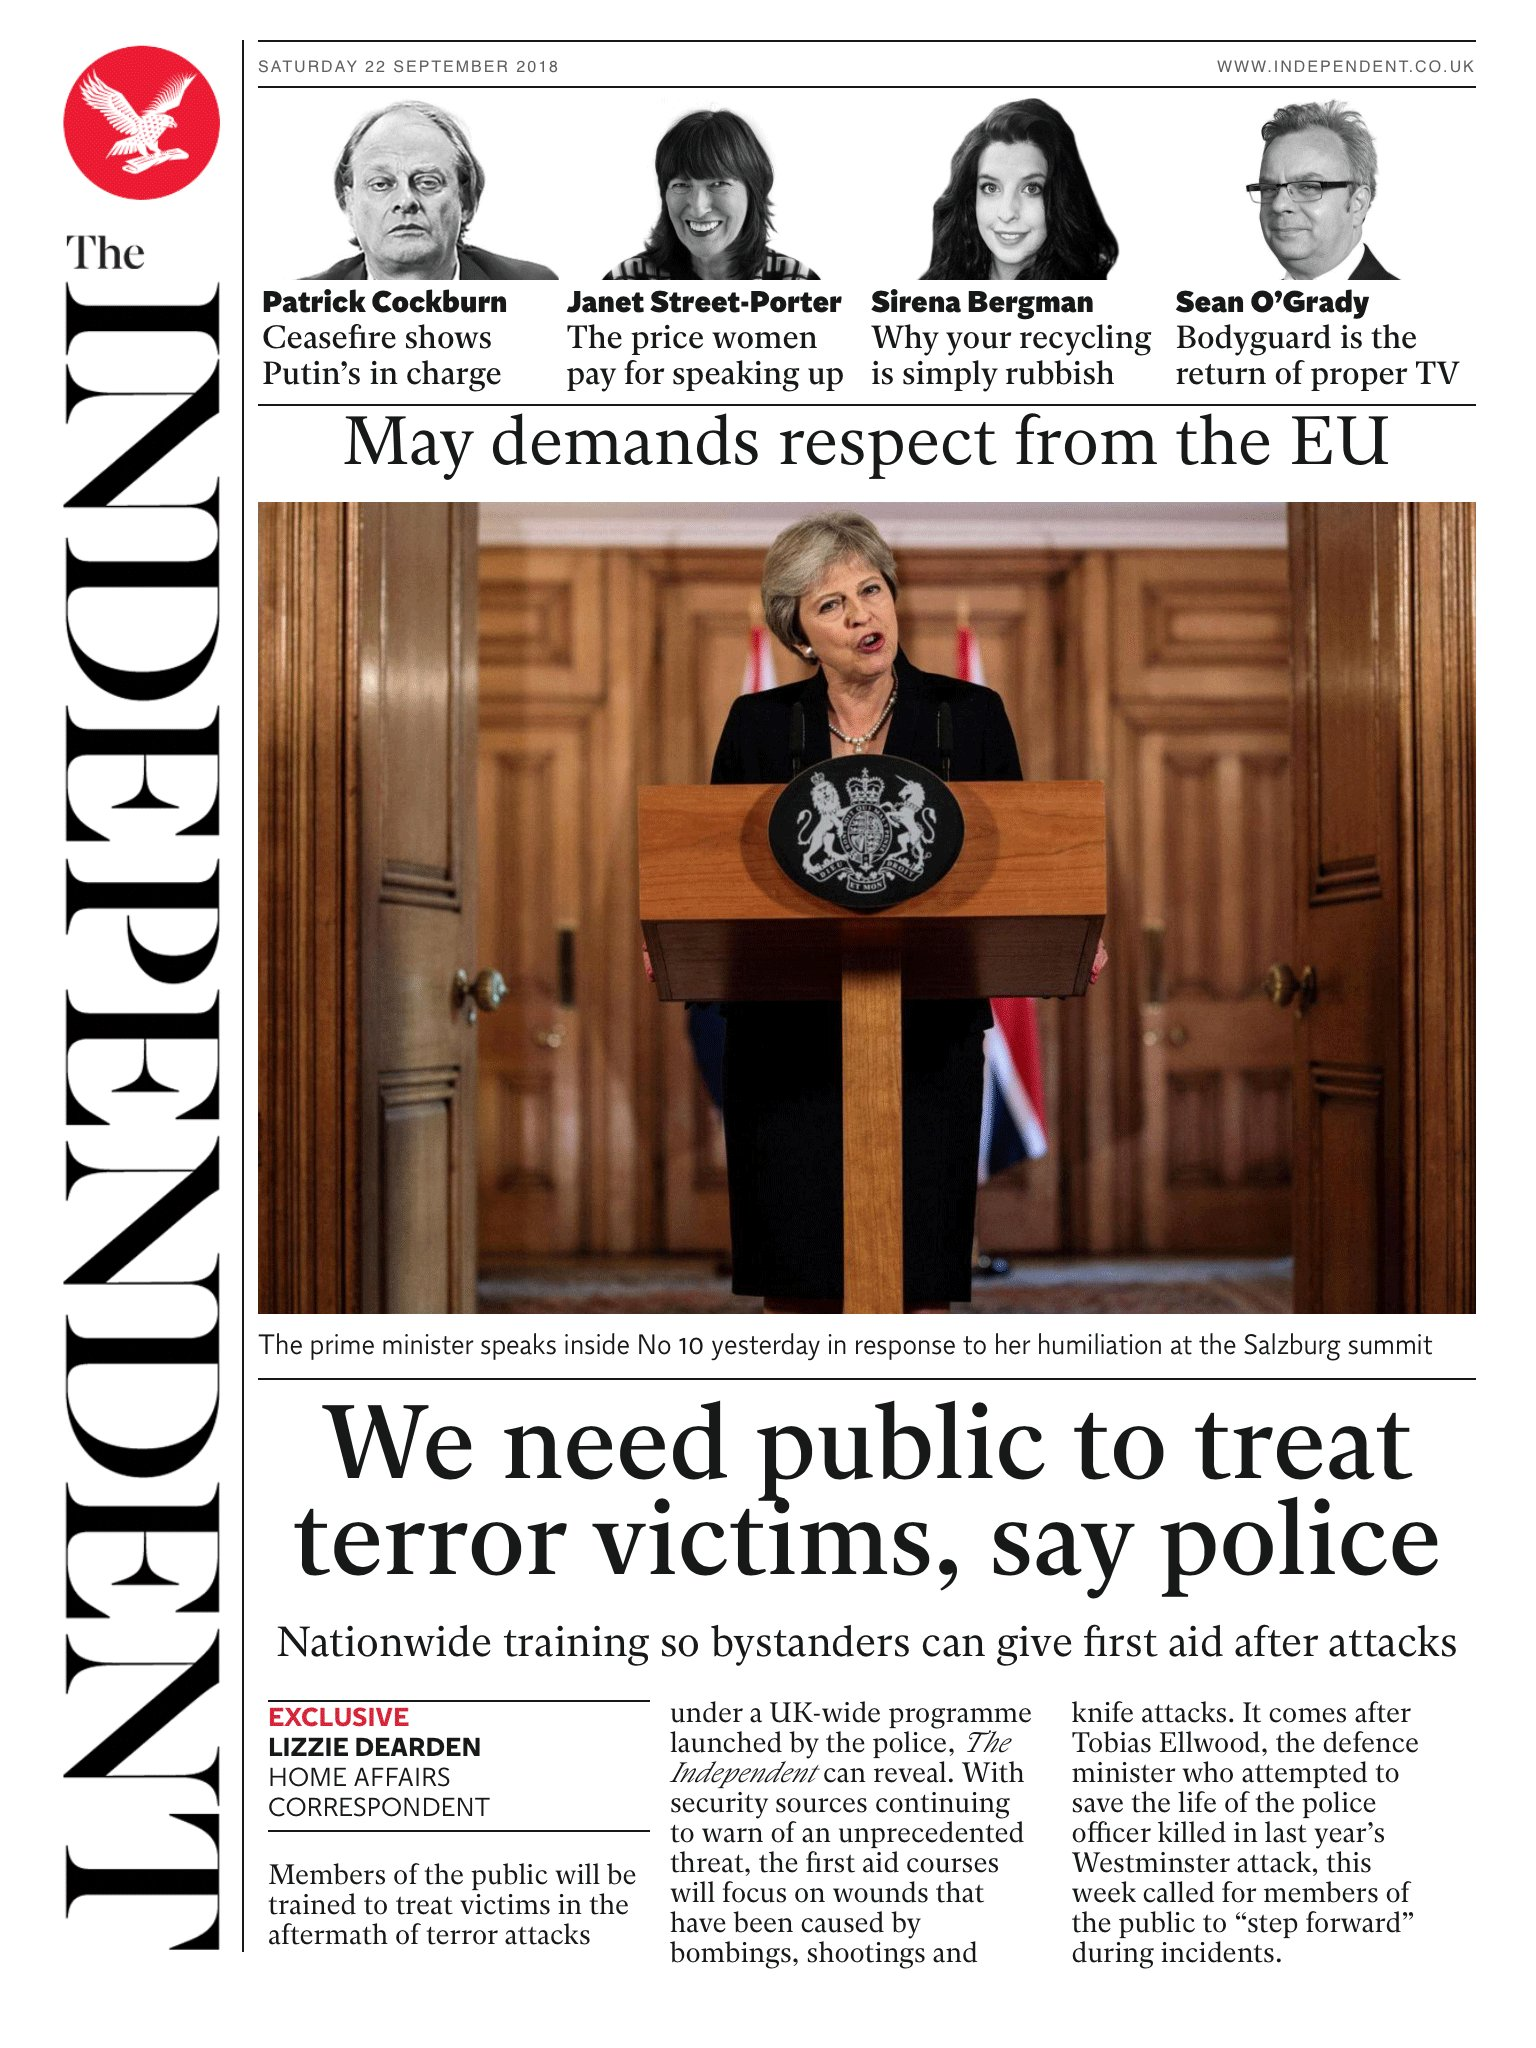 Tomorrow's @independent front page #tomorrowspaperstoday To subscribe to the Daily Edition https://t.co/XF8VnDpHYF https://t.co/8PTGzYxvM0